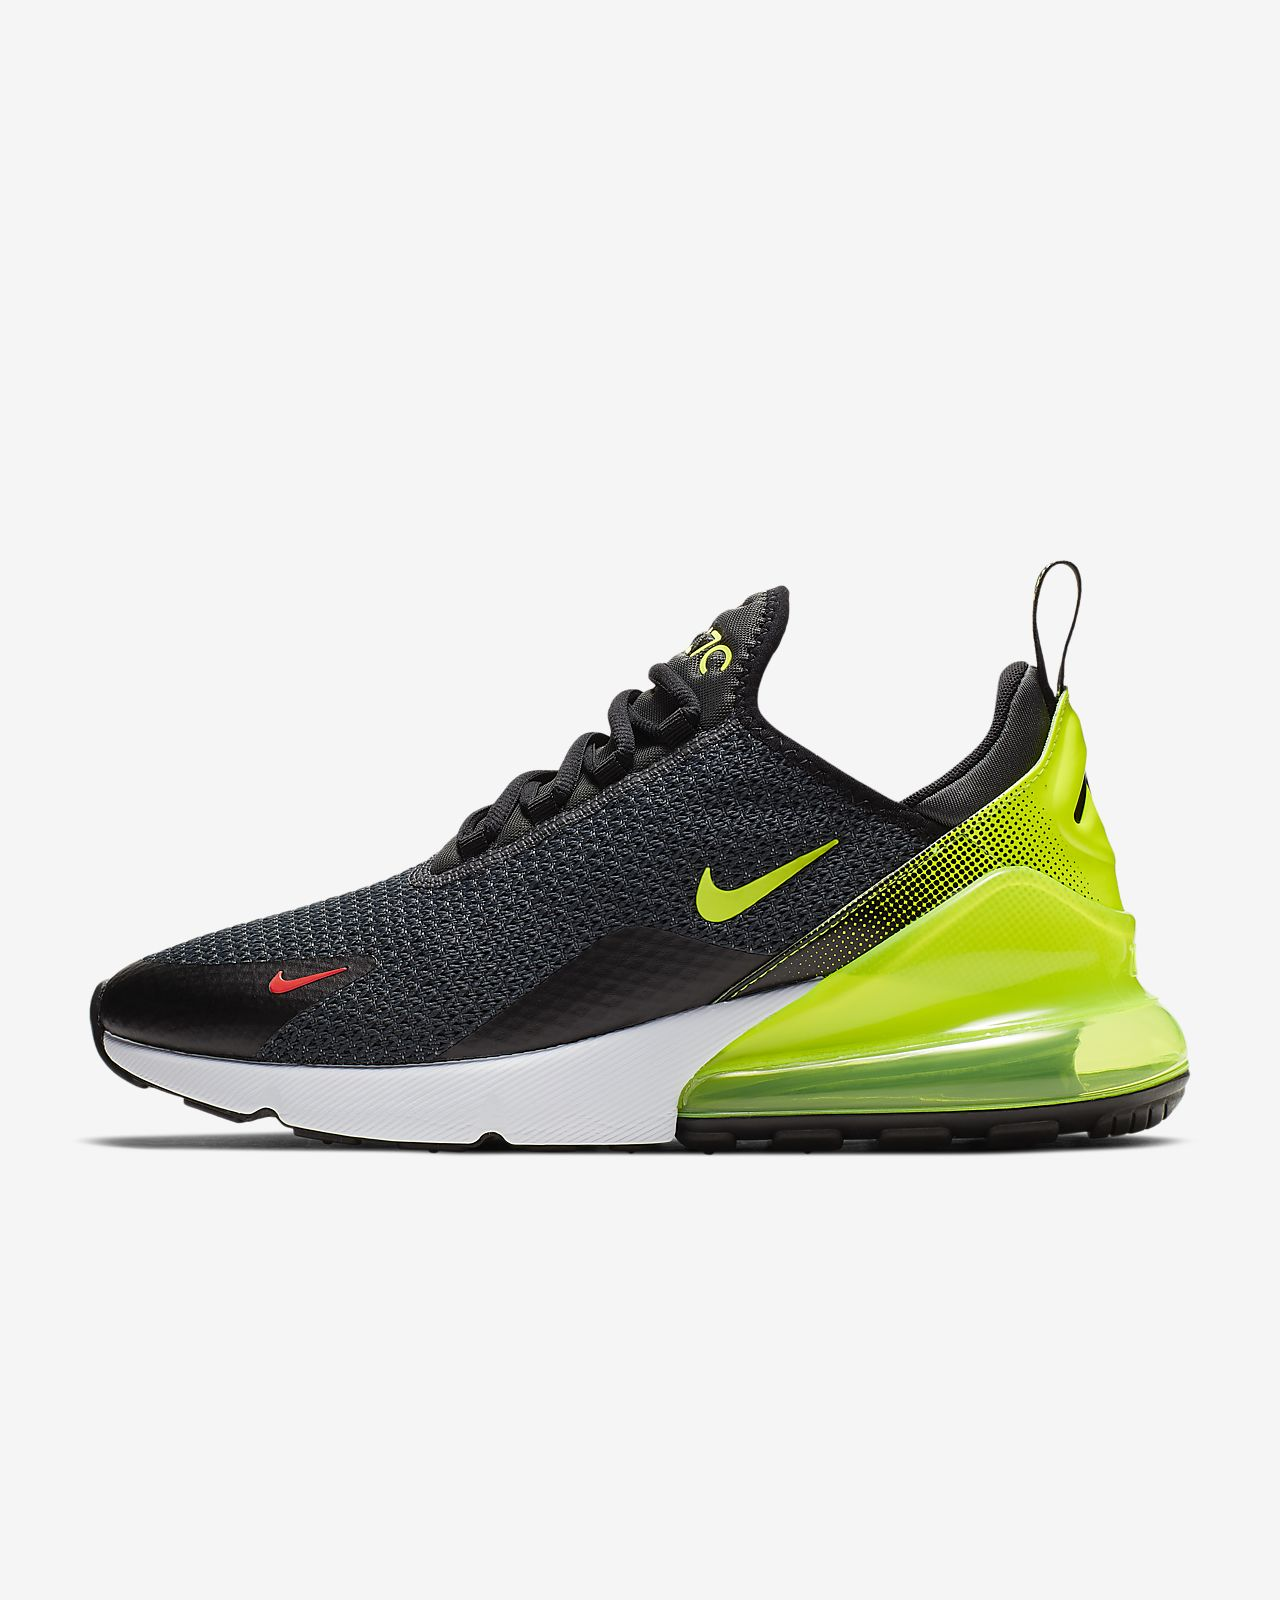 Nike Air Max 270 SE Men's Shoe